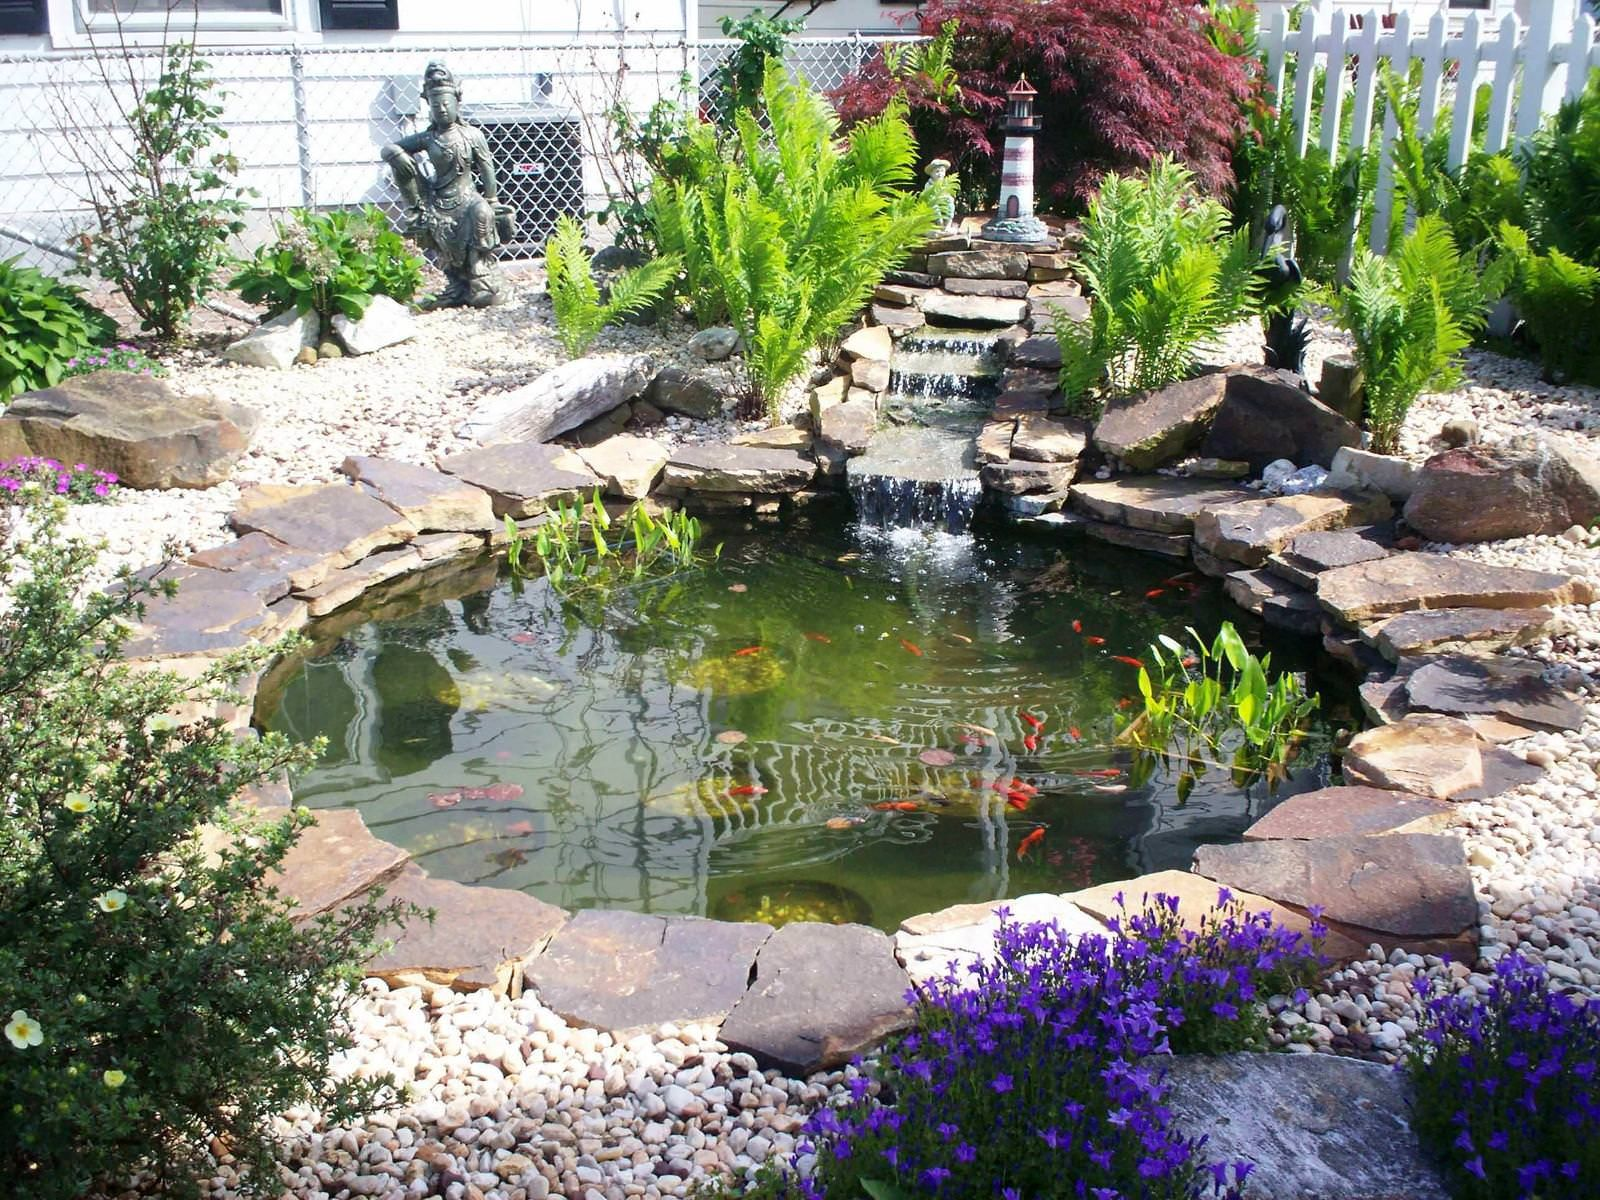 Small garden or backyard aquarium ideas practic ideas for Small pond house plans